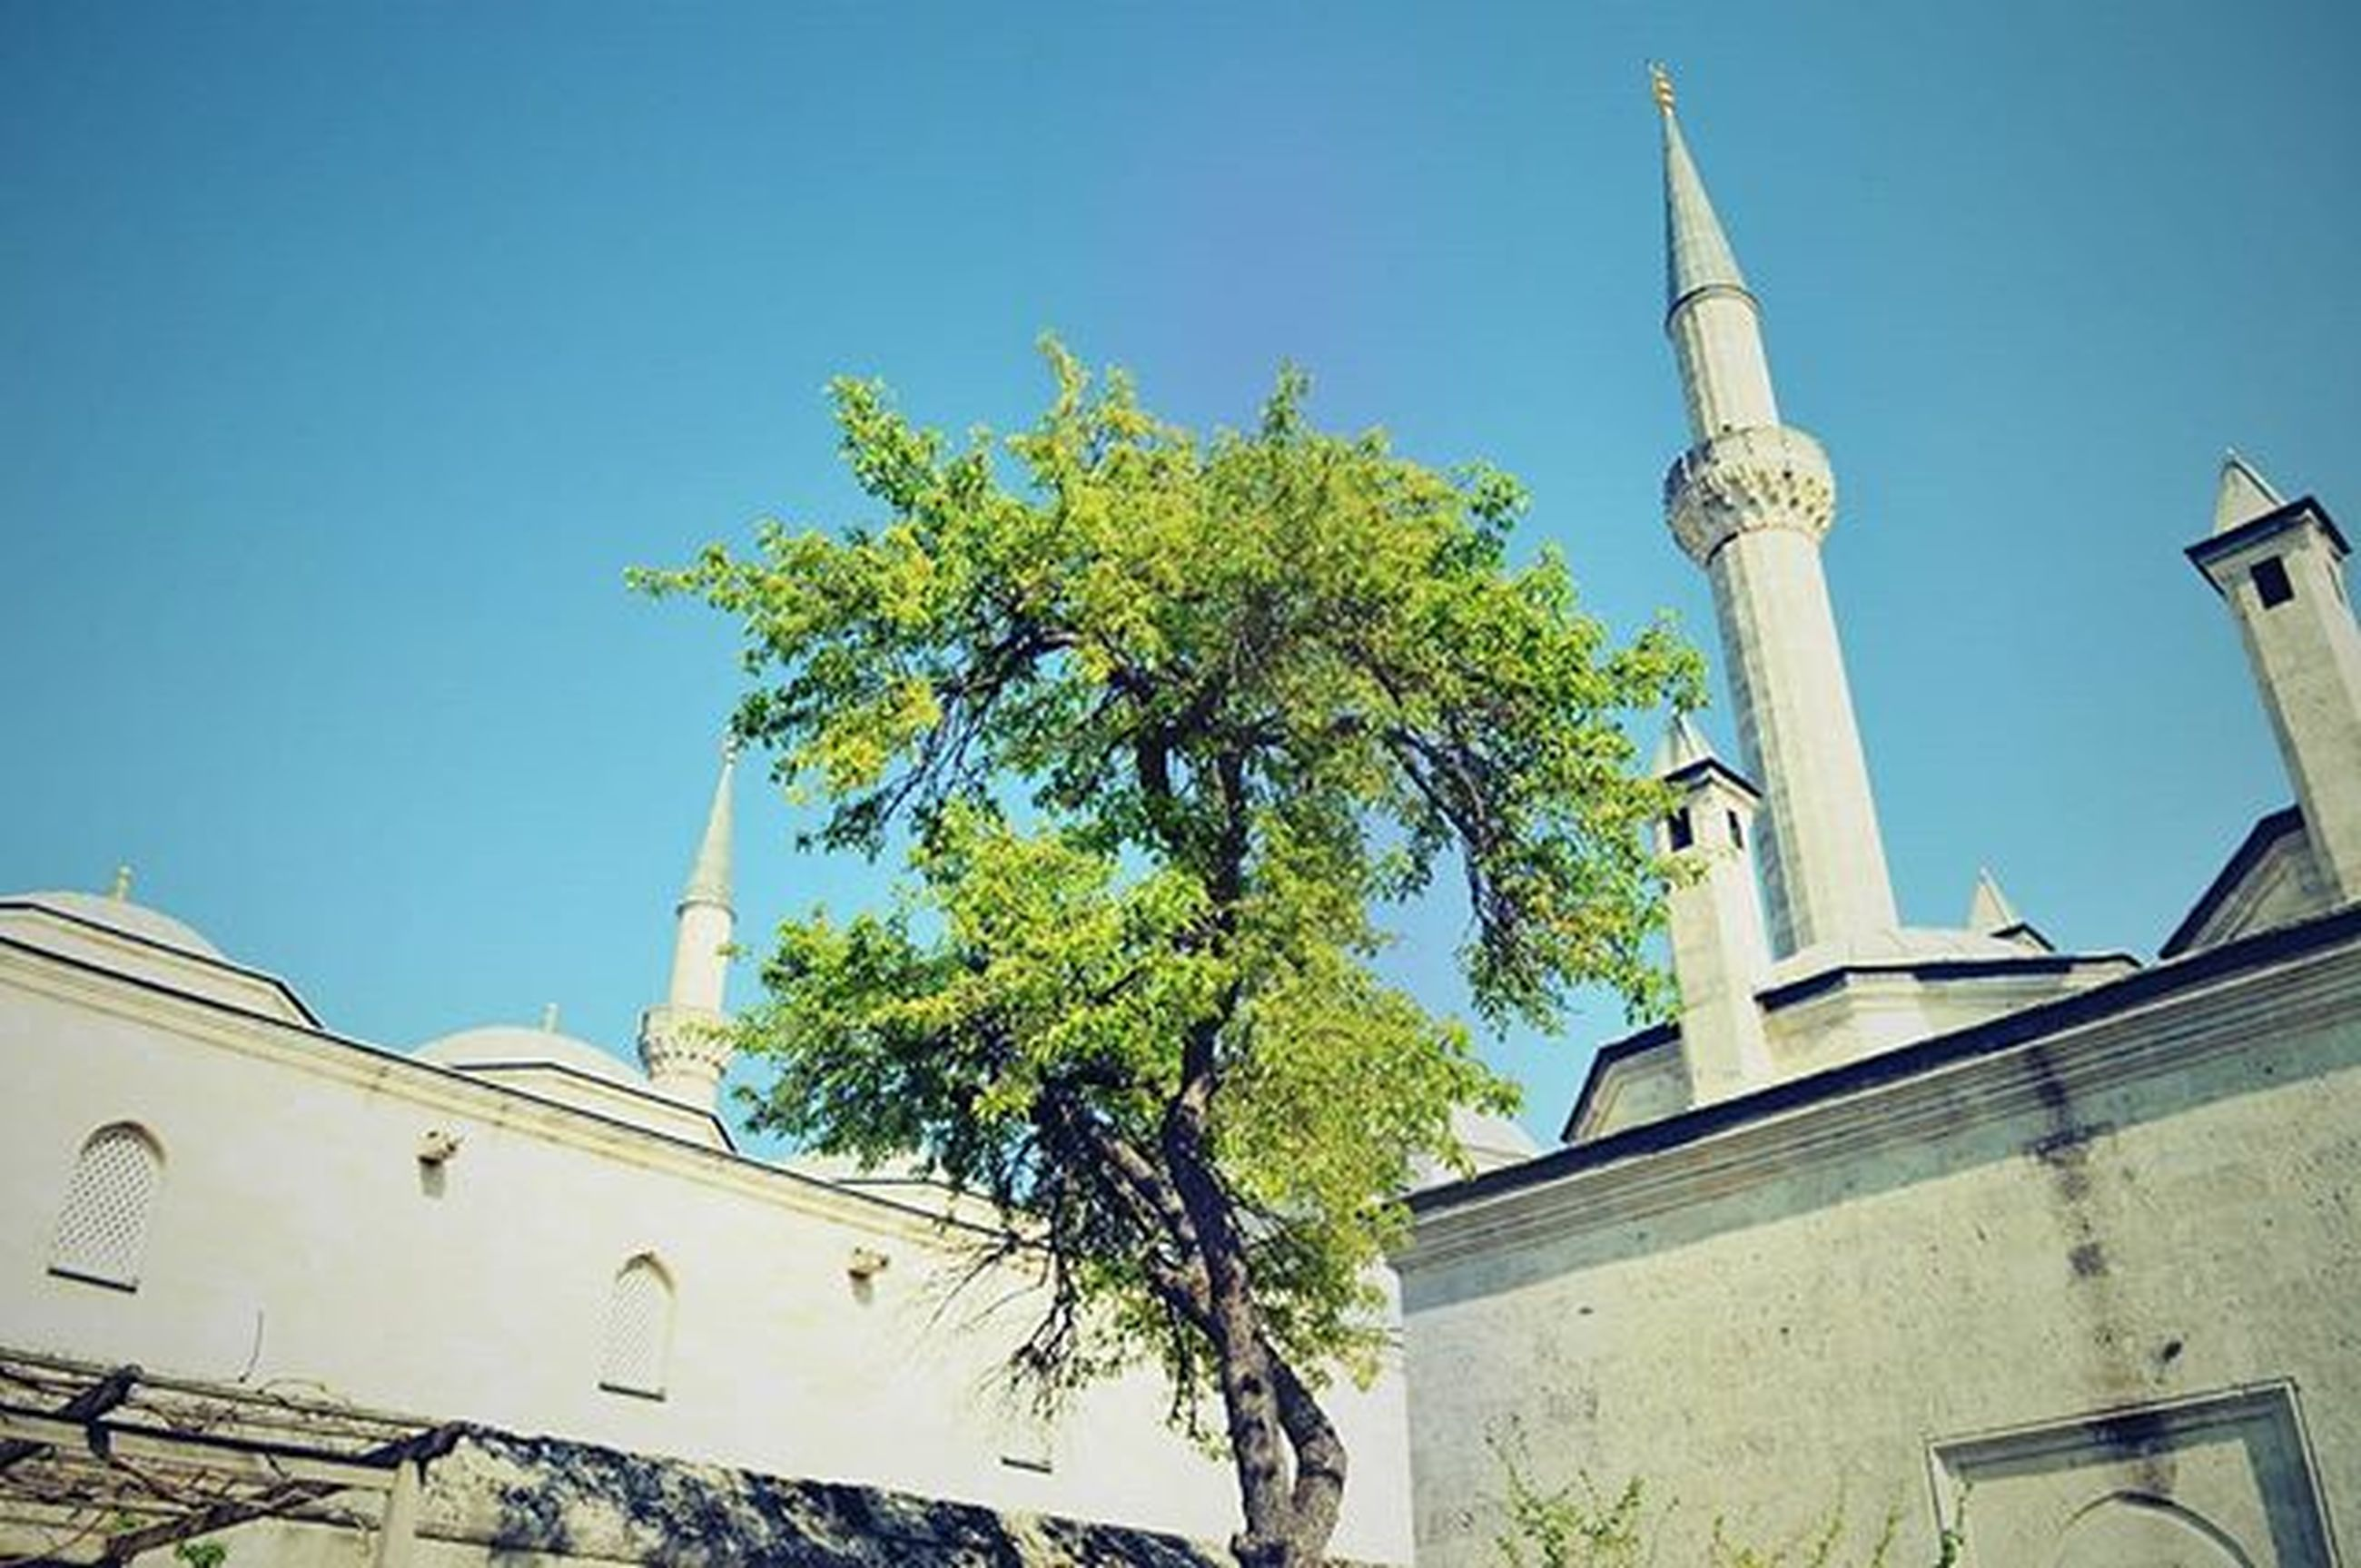 architecture, building exterior, built structure, clear sky, low angle view, blue, religion, church, place of worship, spirituality, tree, cross, copy space, sunlight, day, high section, no people, outdoors